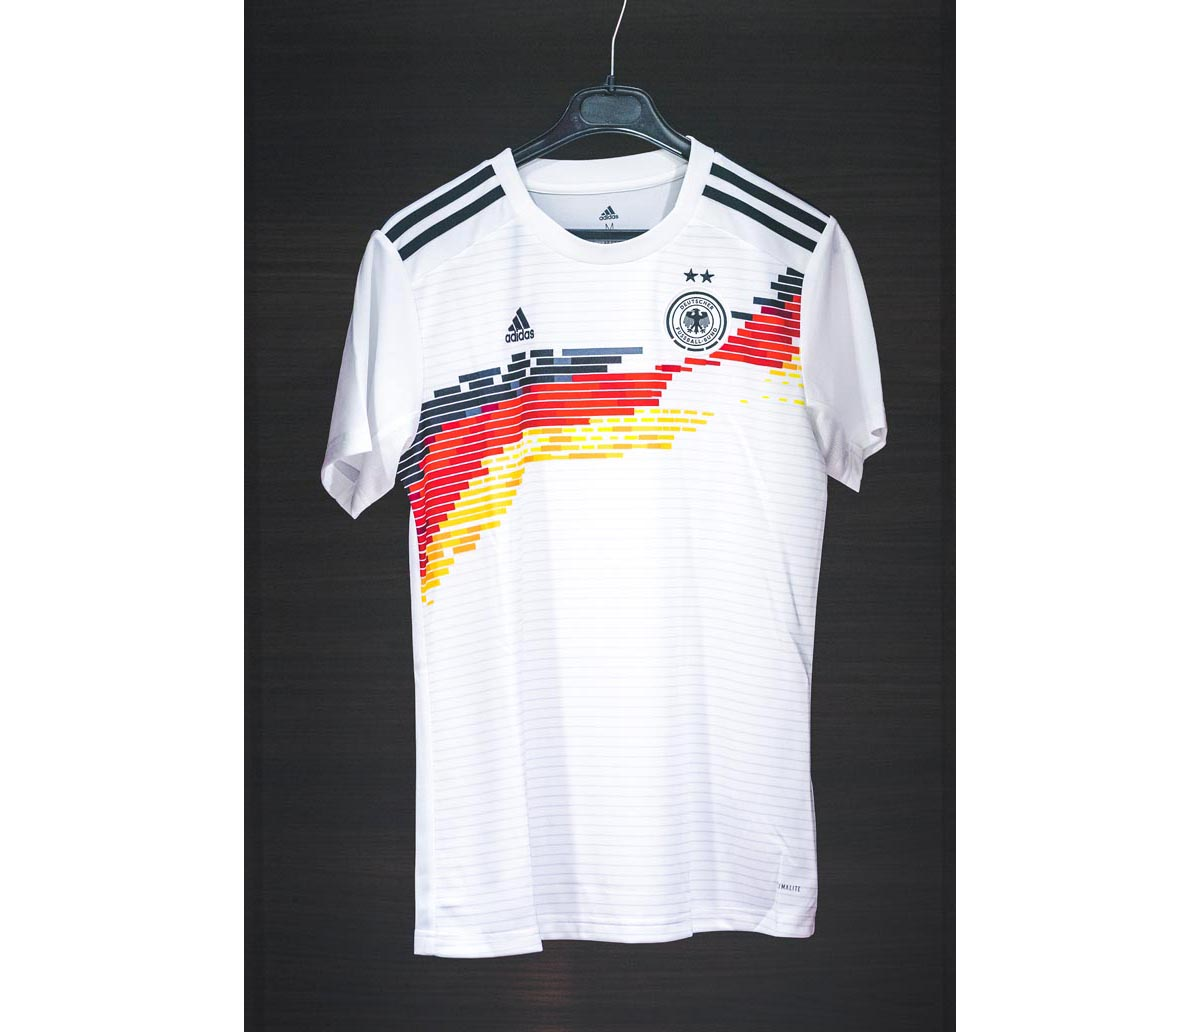 4-adidas-germany-wormes-world-cup-2019-tipe